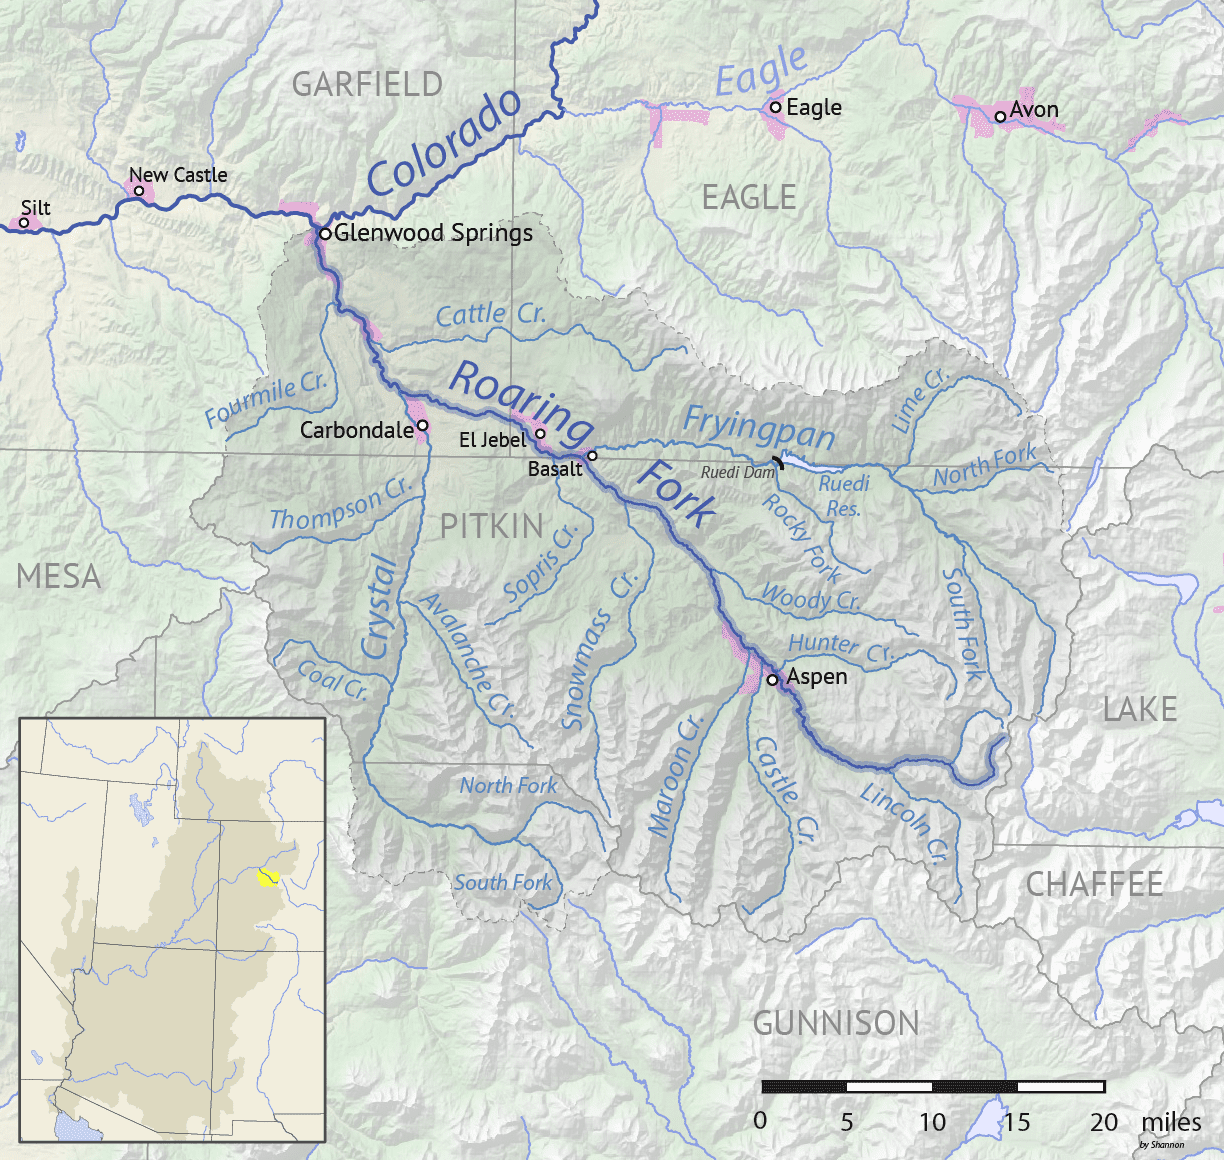 Image of the Roaring Fork Colorado Basin and the Fryingpan River